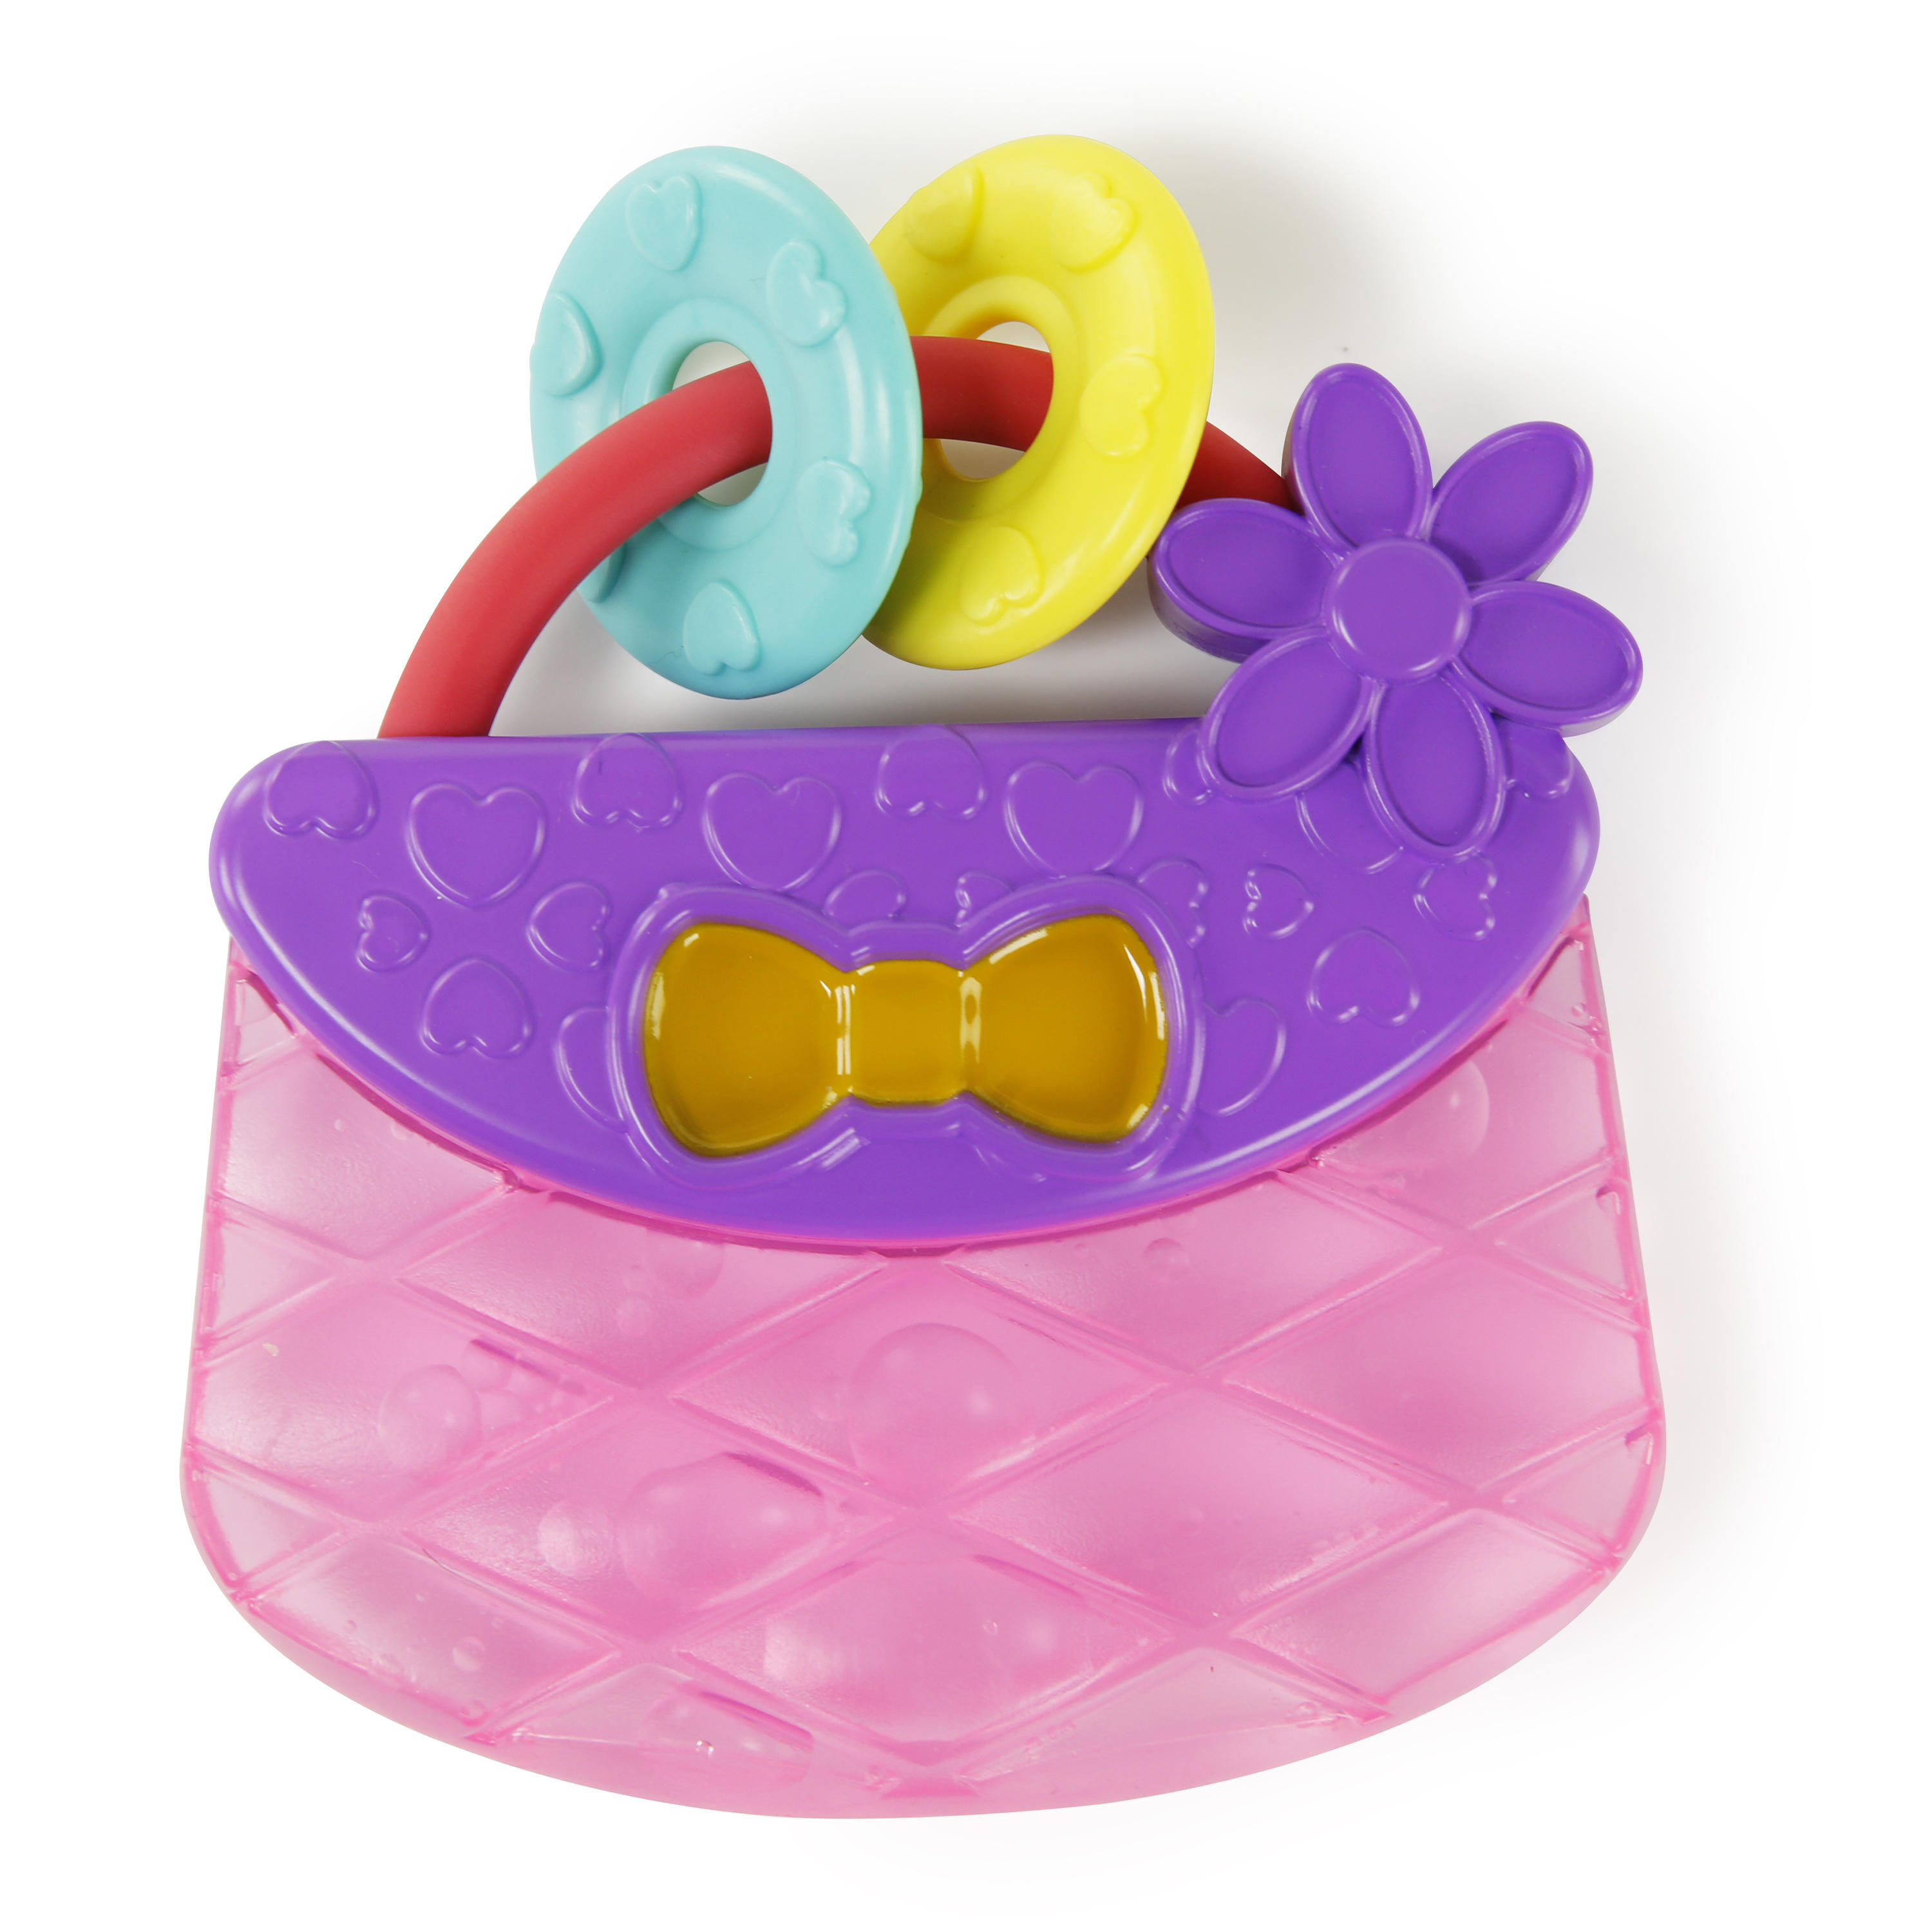 Bright Starts Carry & Teethe Purse Toy